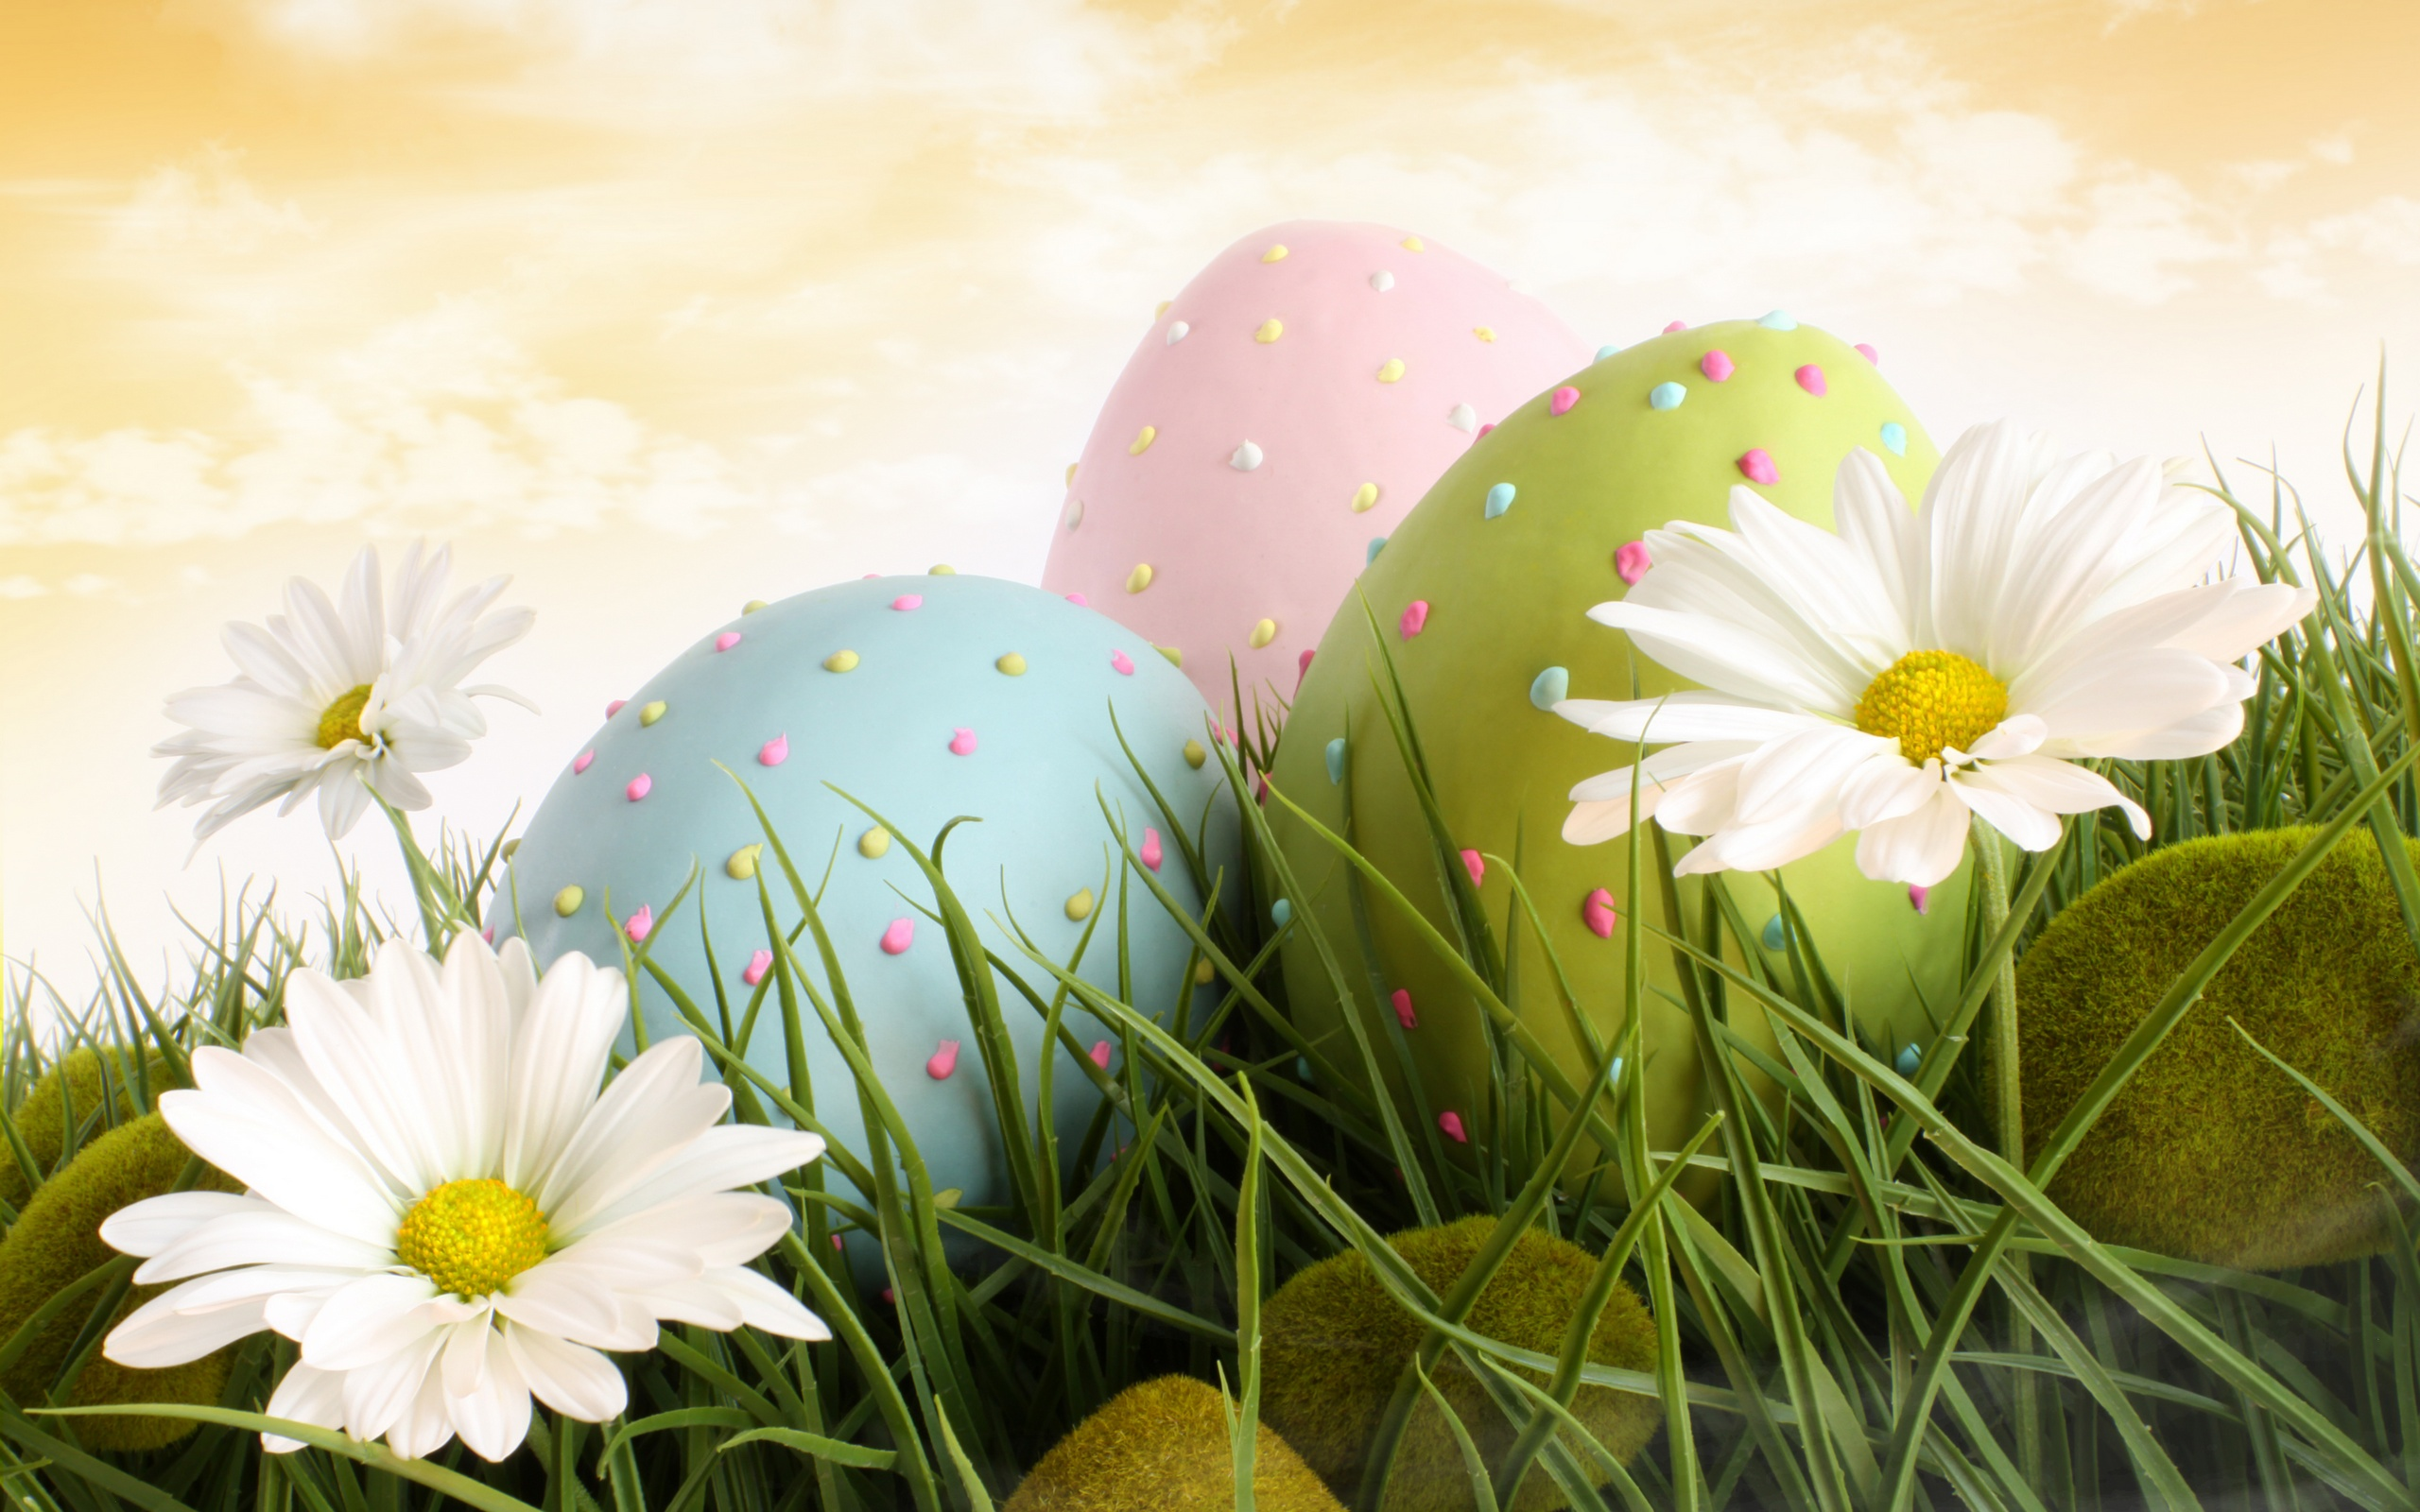 Easter Screensavers HD 21569 2560x1600 px ~ HDWallSource.com